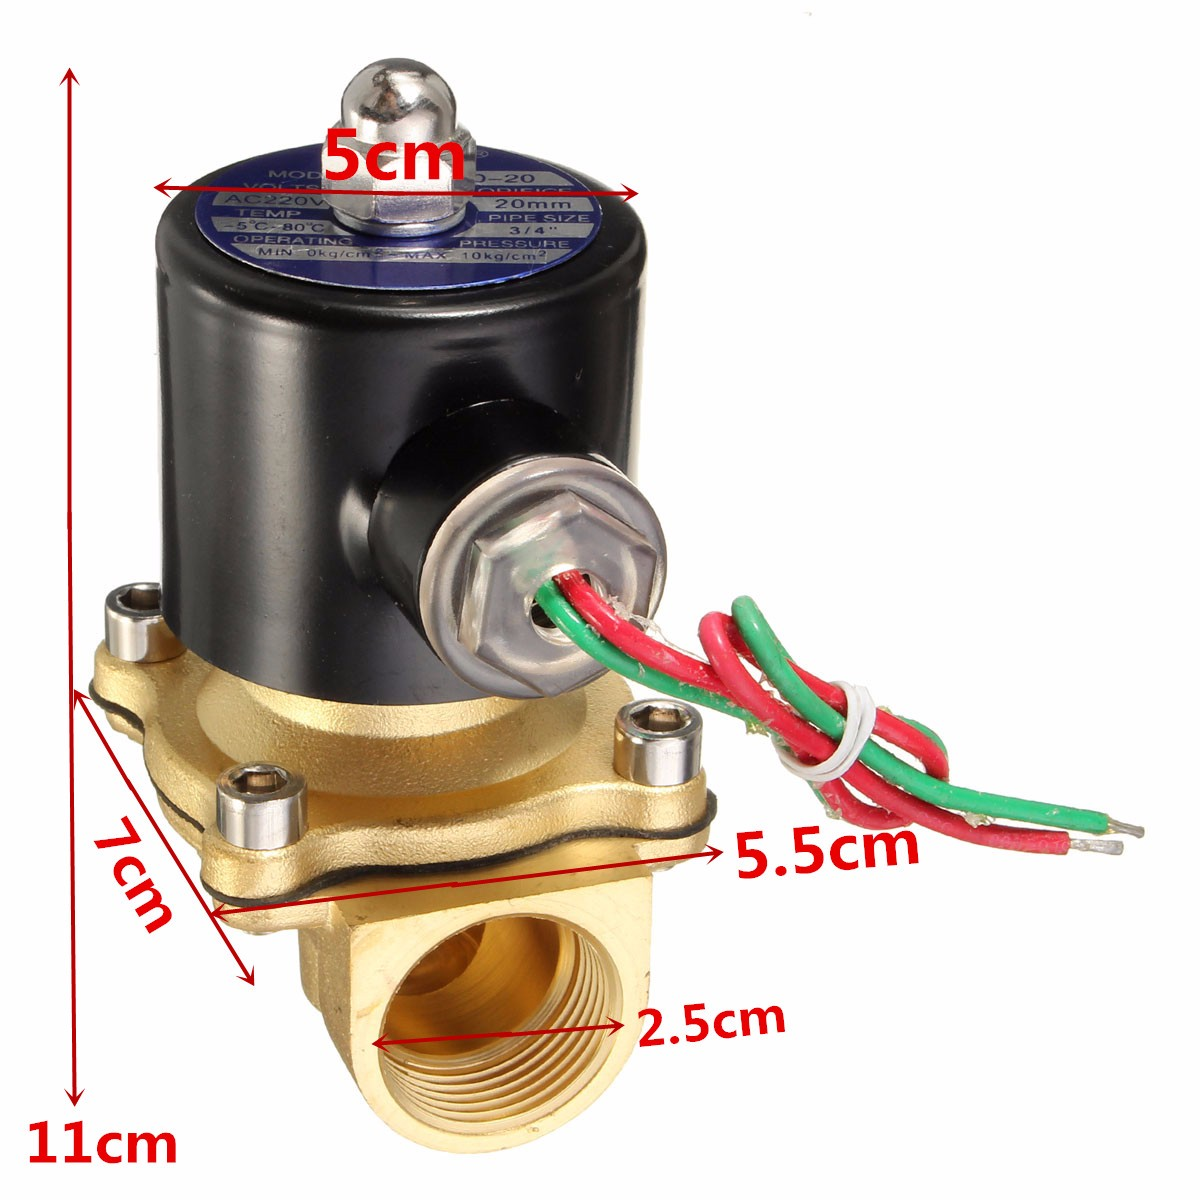 AC 220V 3/4 Brass Electric Solenoid Valve Water Air Fuels Black 2W-200-20 Hot New Arrival  Electric Solenoids